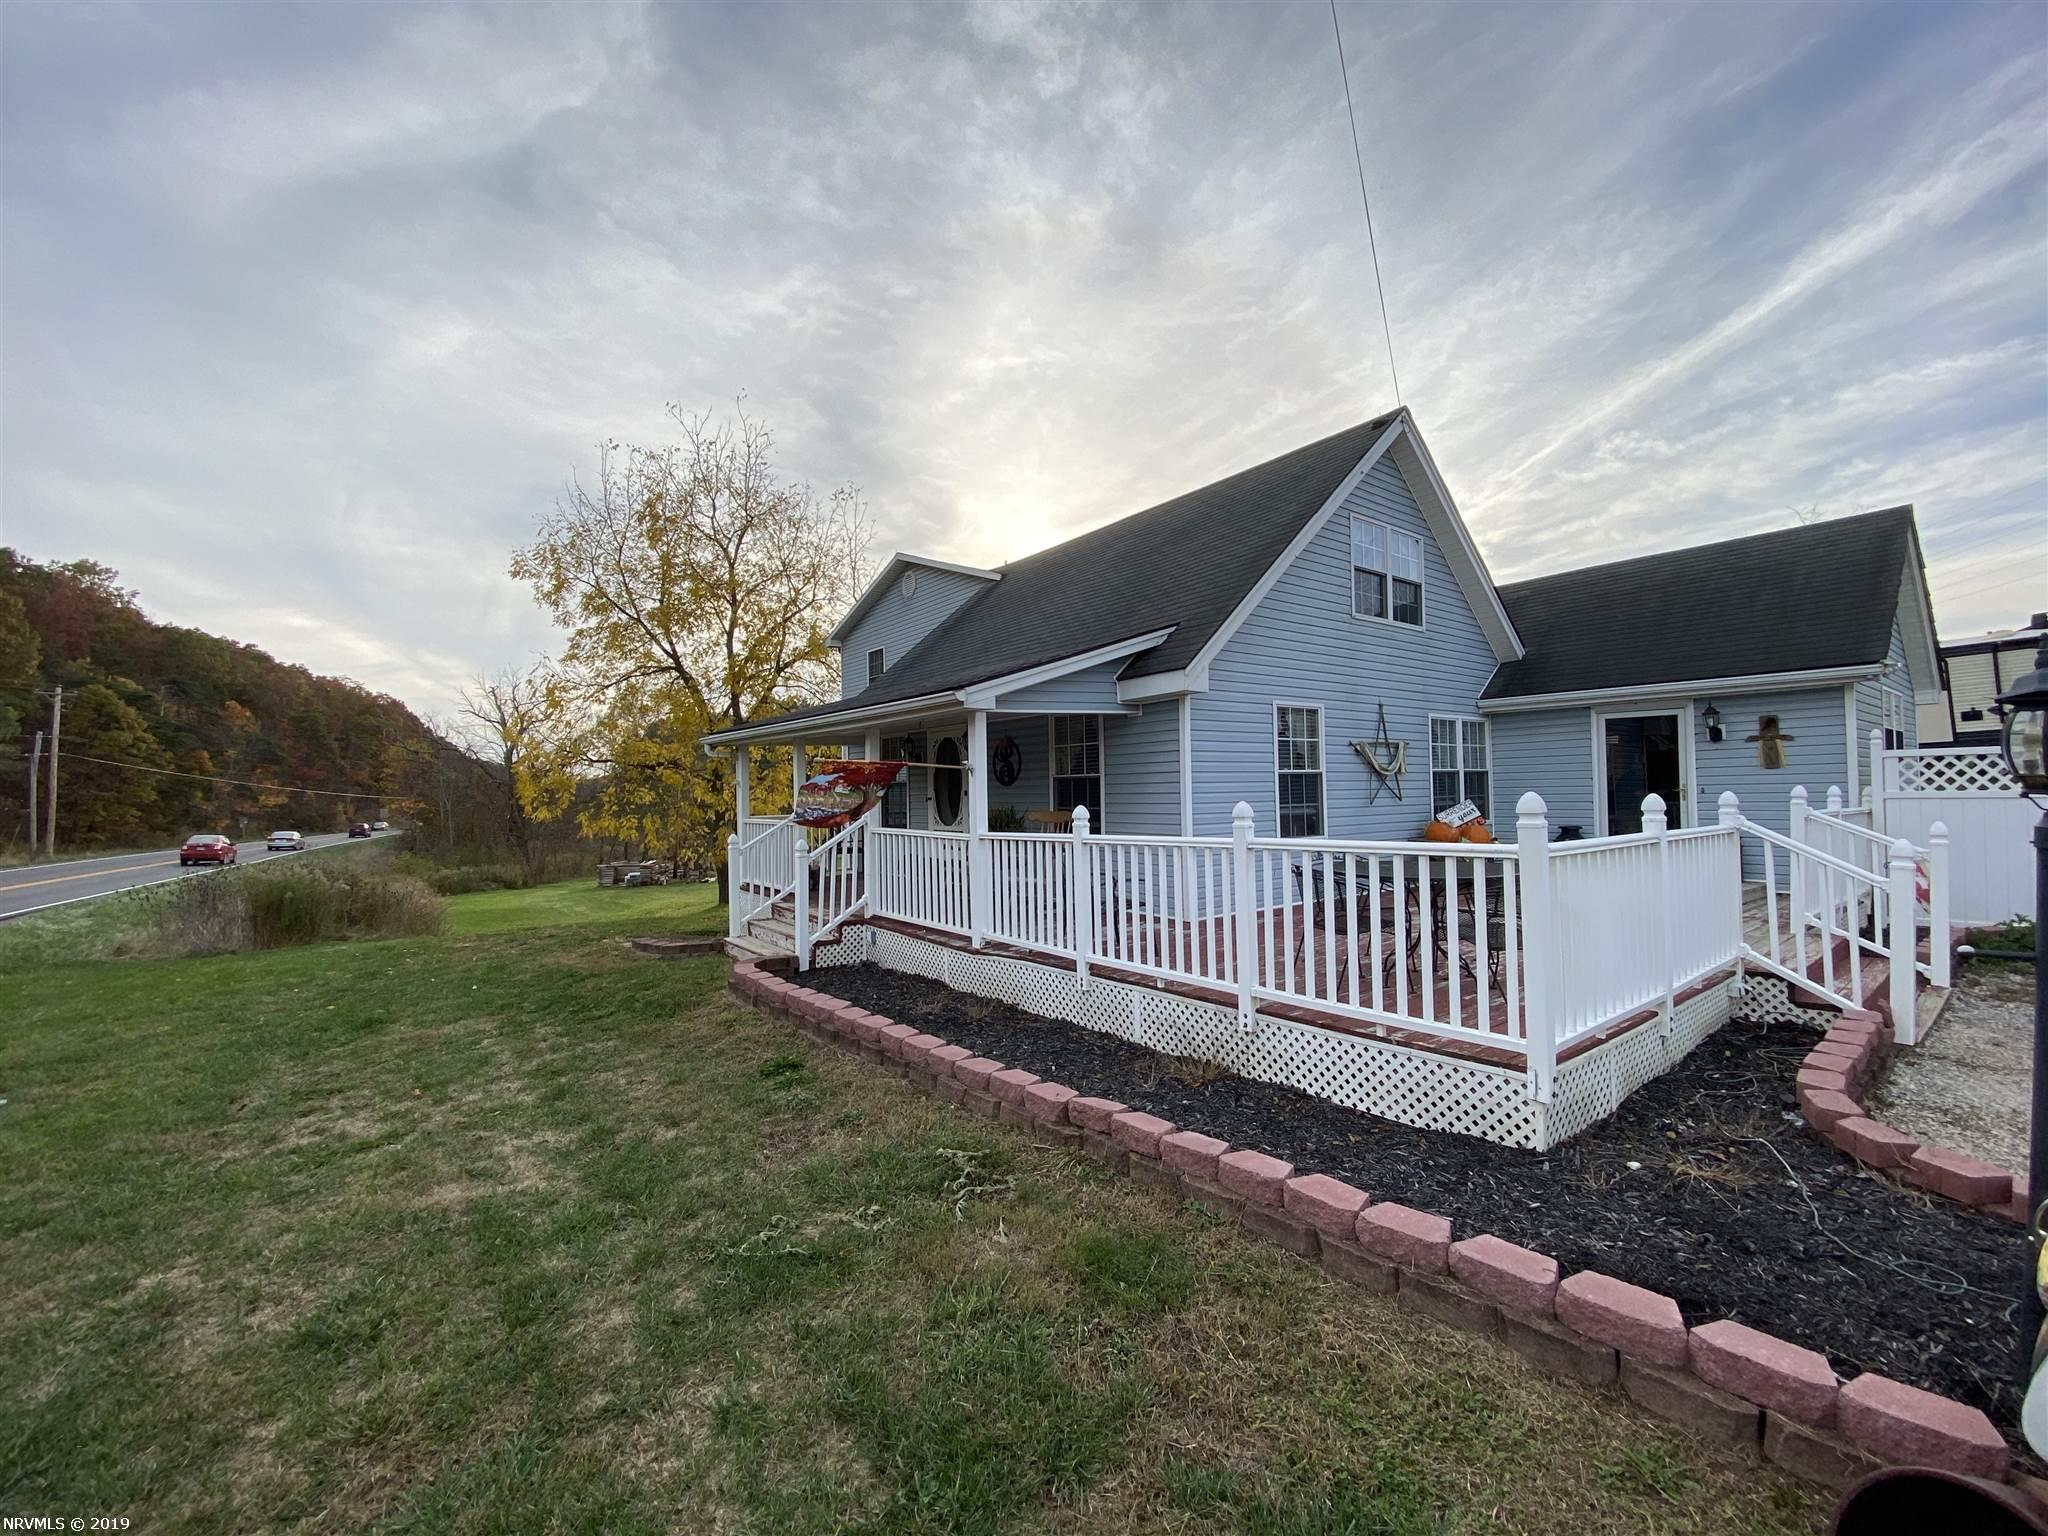 Remodeled & extended farmhouse in a convenient location! Enjoy the spacious deck, wraparound porch & rural views of this 2700+sf home, just off Route 8 & near exit 114. Easy access to Interstate 81 & Downtown Christiansburg. Three bedrooms, two bathrooms plus an office space provide just right amount of space, with charm & character. A must-see property!